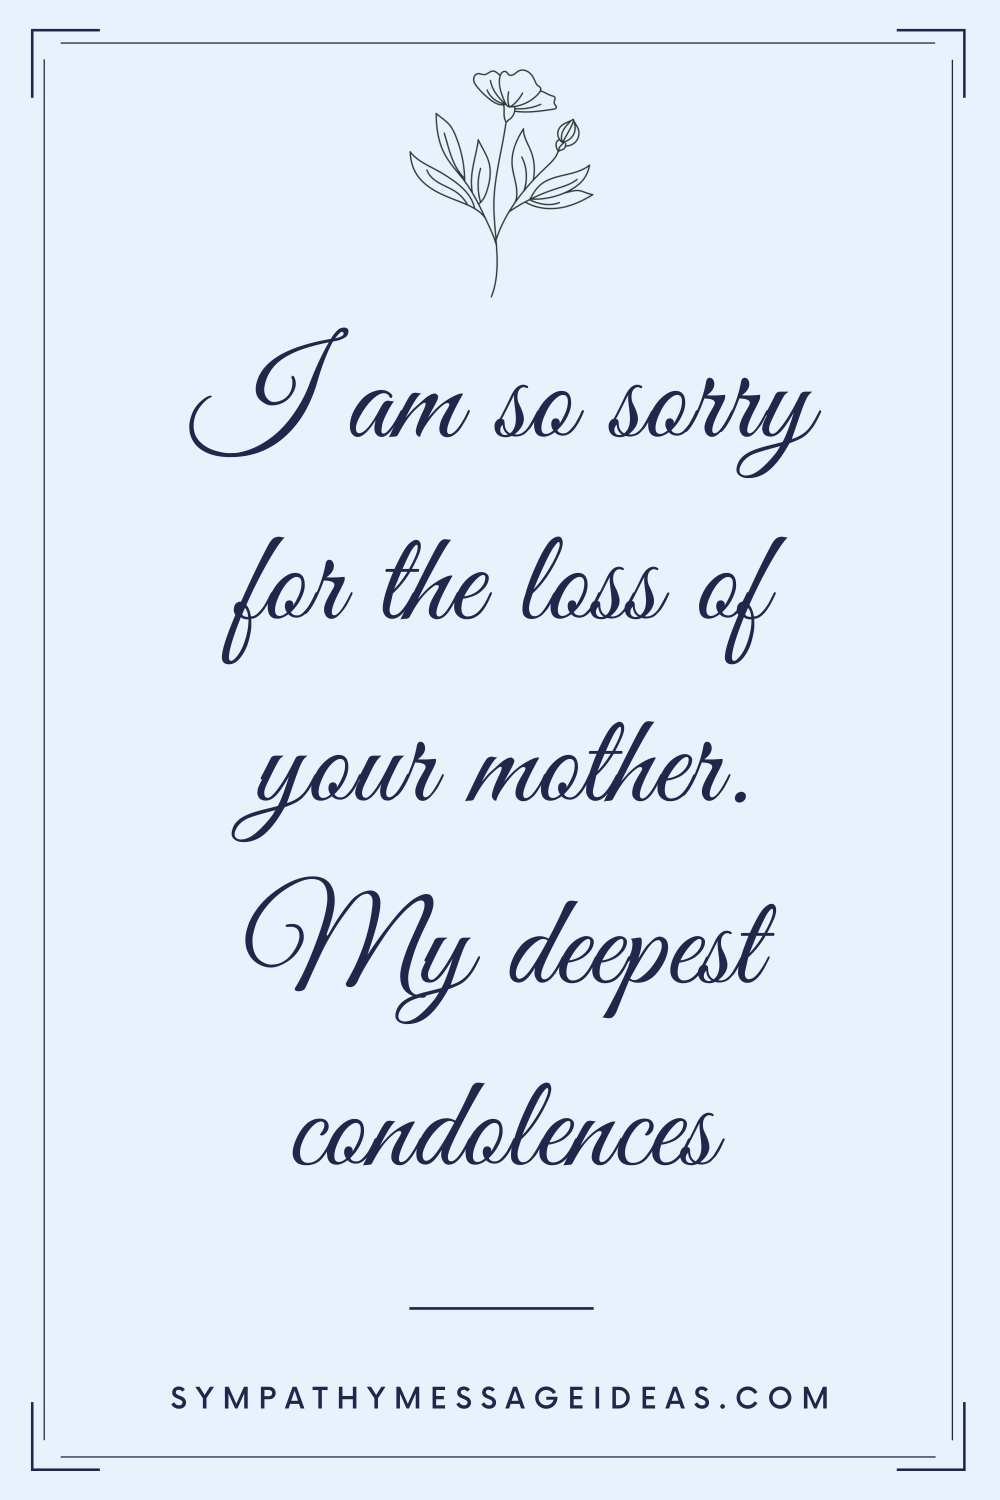 sympathy message for loss of mother